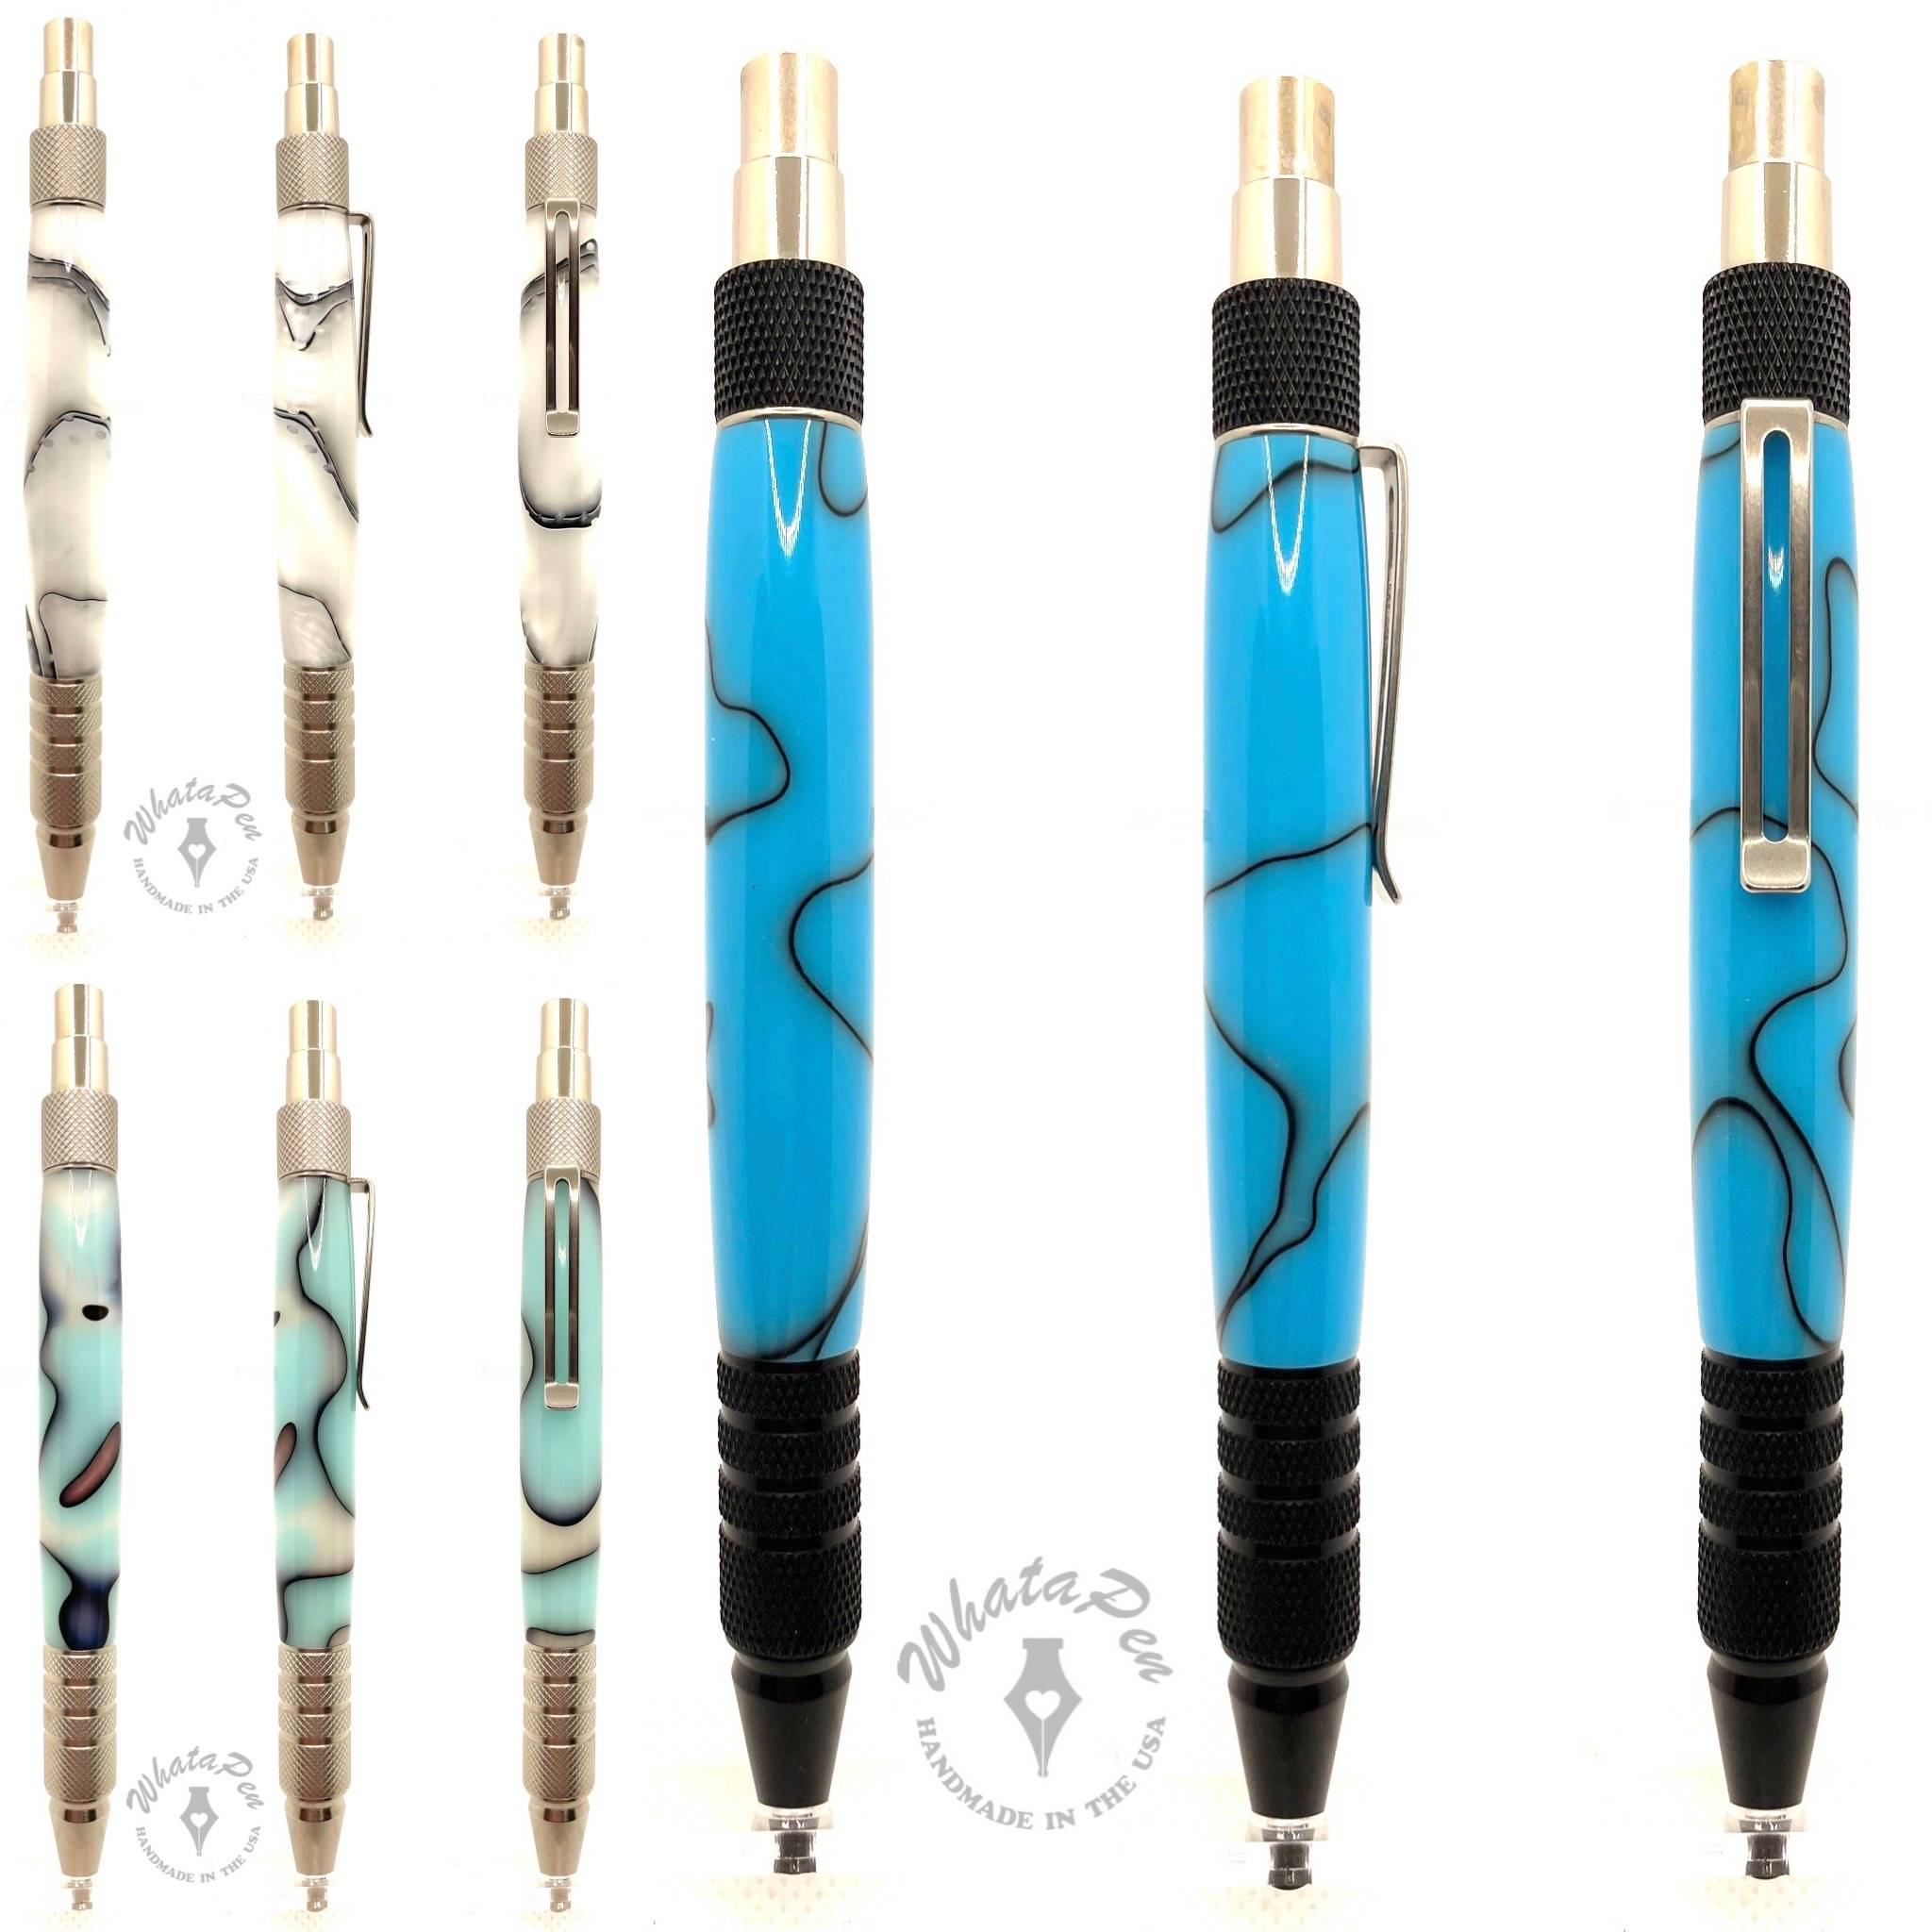 New EDC click pens available